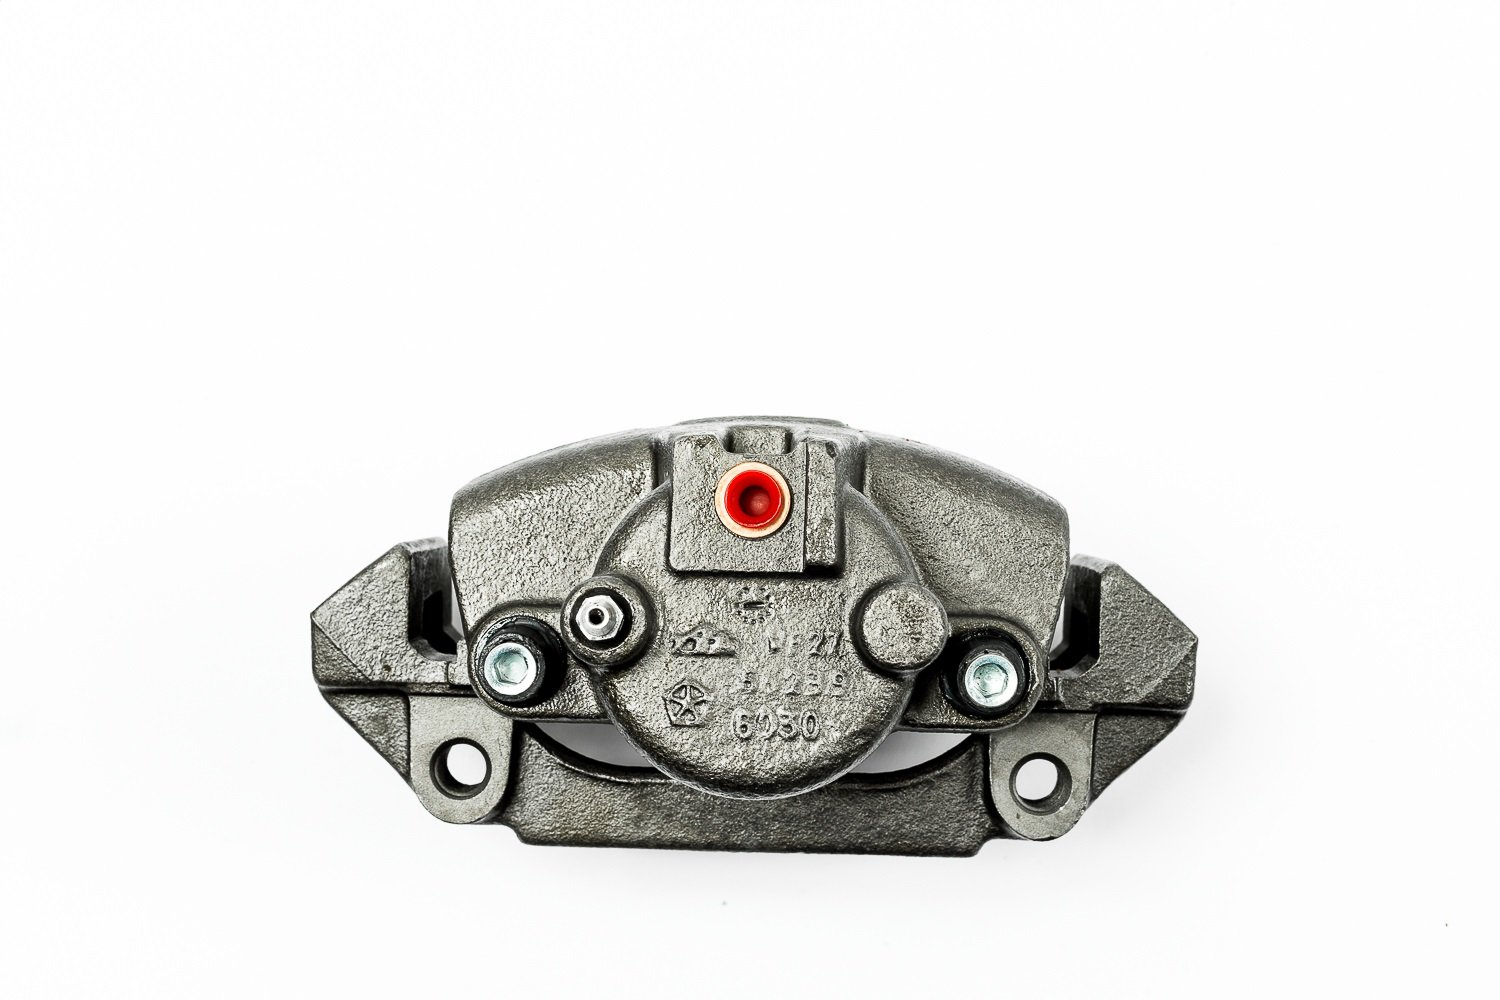 Power Stop L4776 Autospecialty Remanufactured Brake Caliper